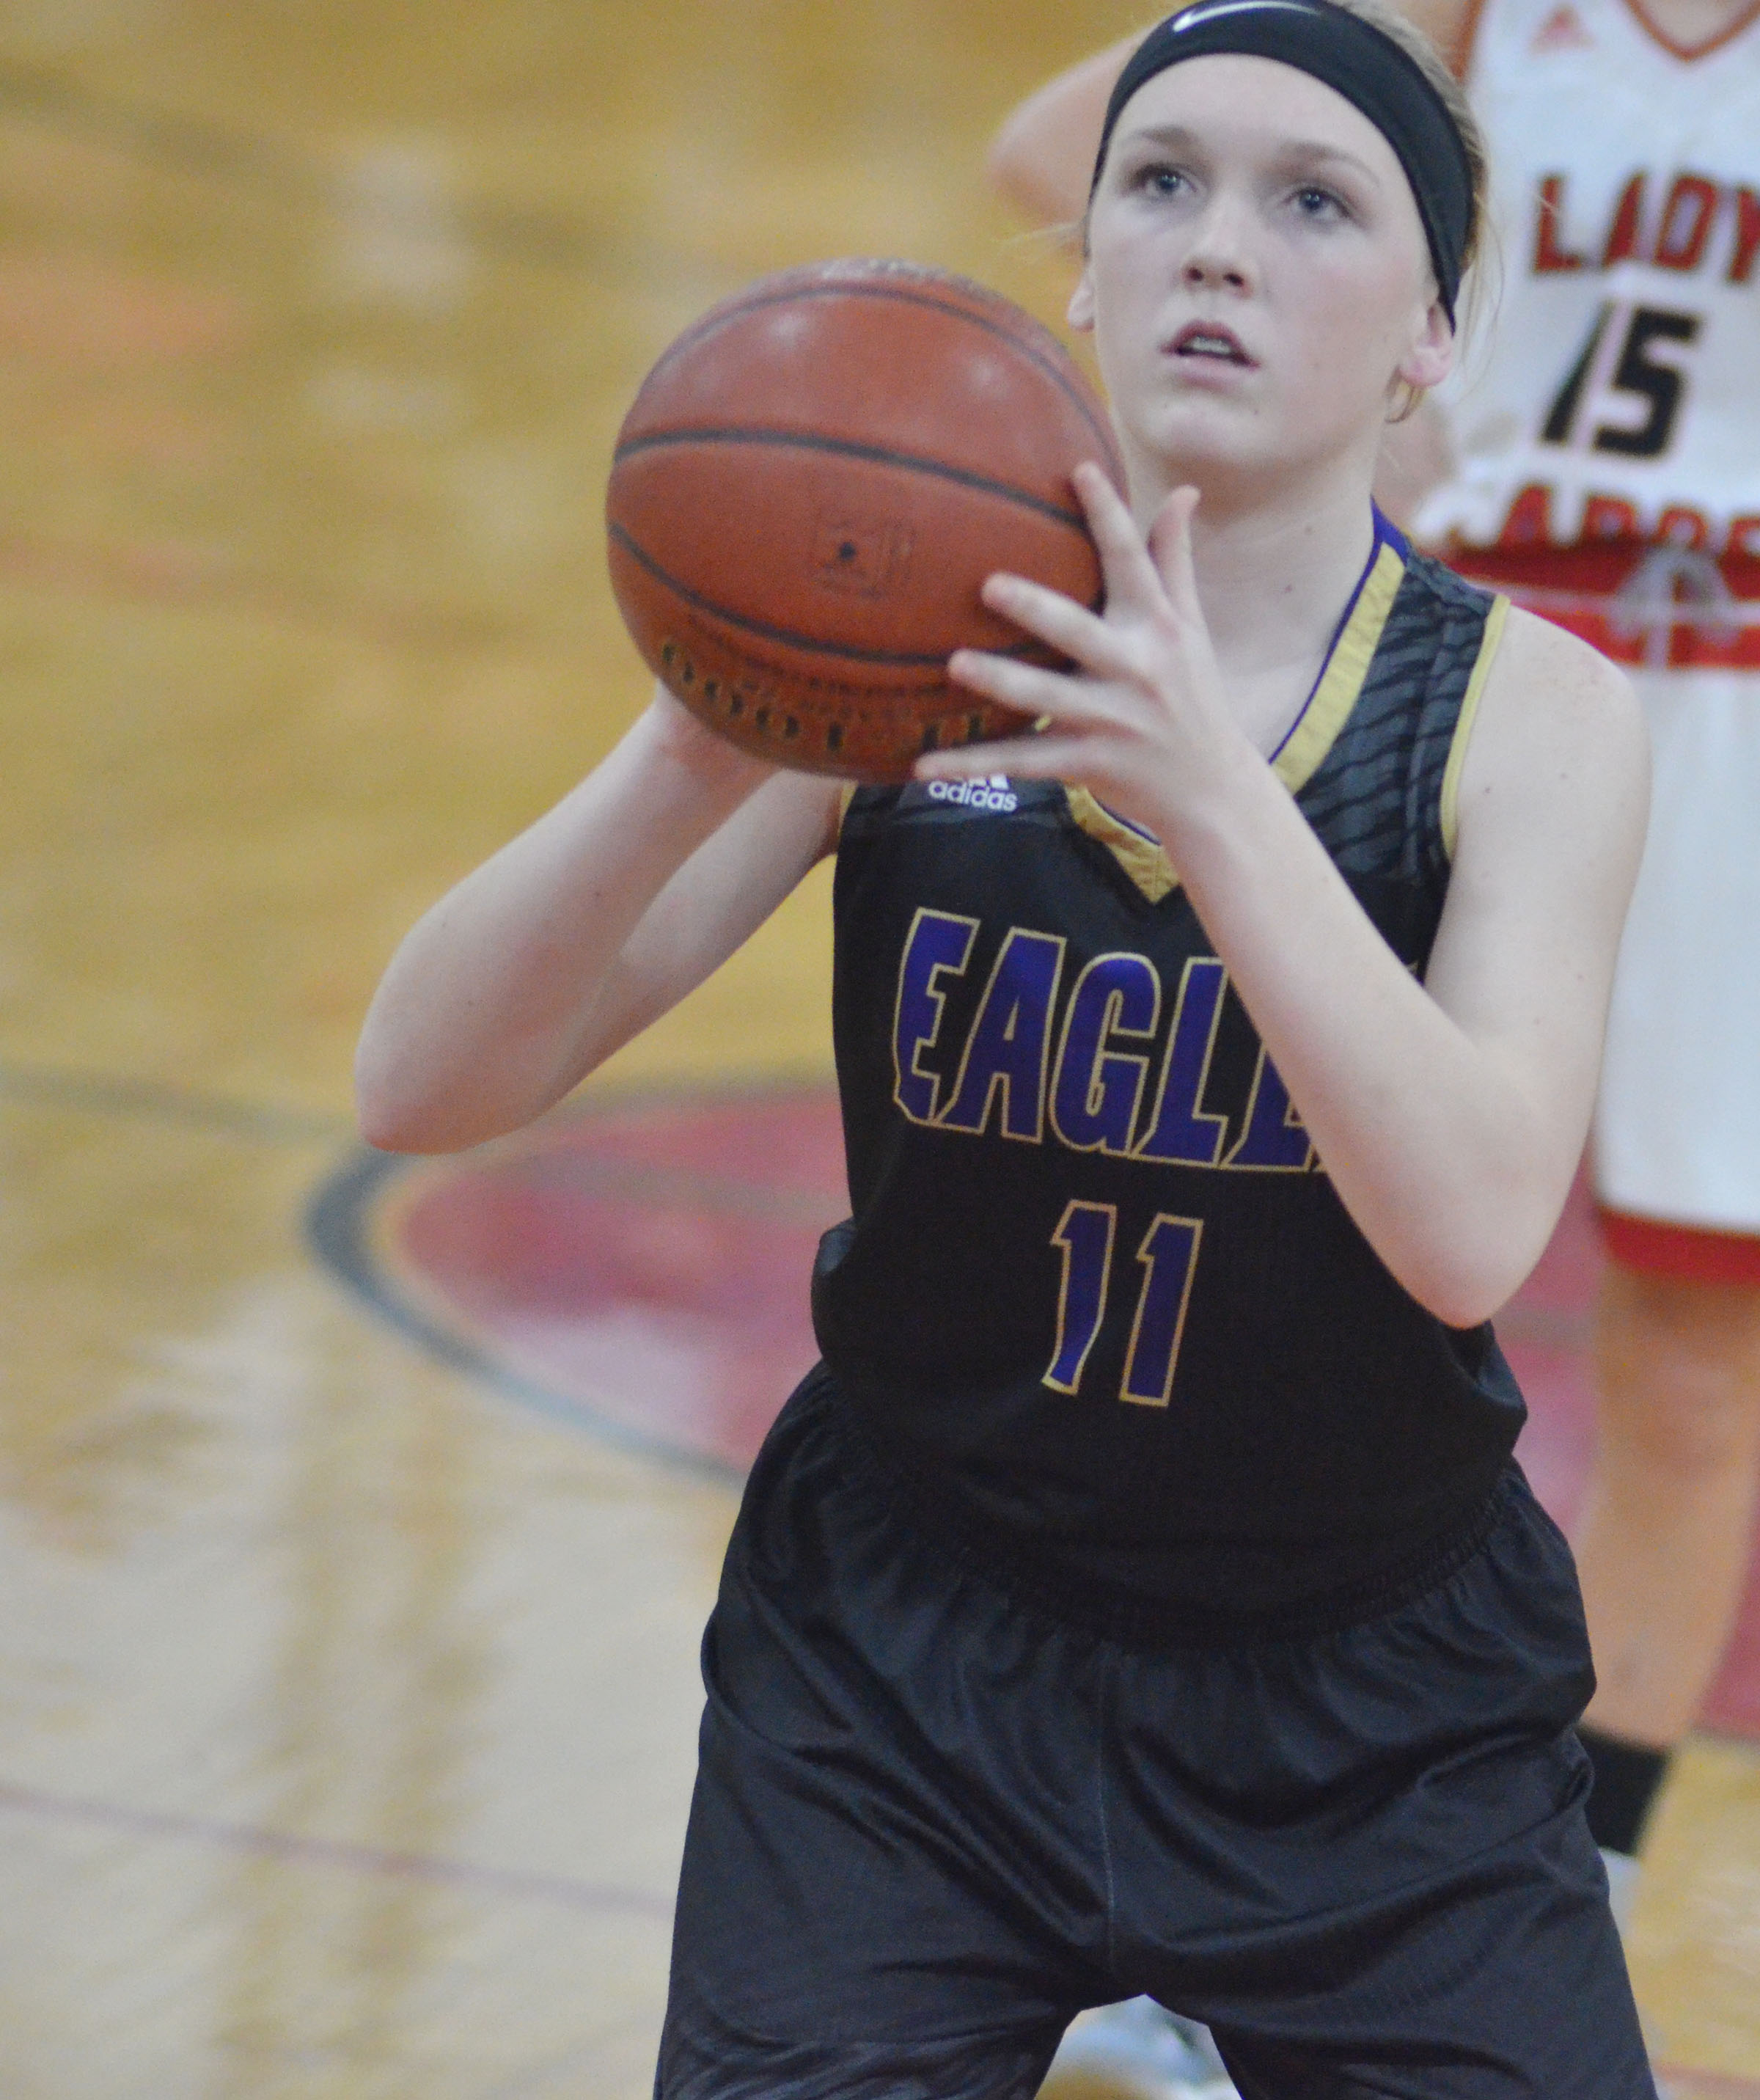 Campbellsville Middle School eighth-grader Catlyn Clausen shoots the ball.